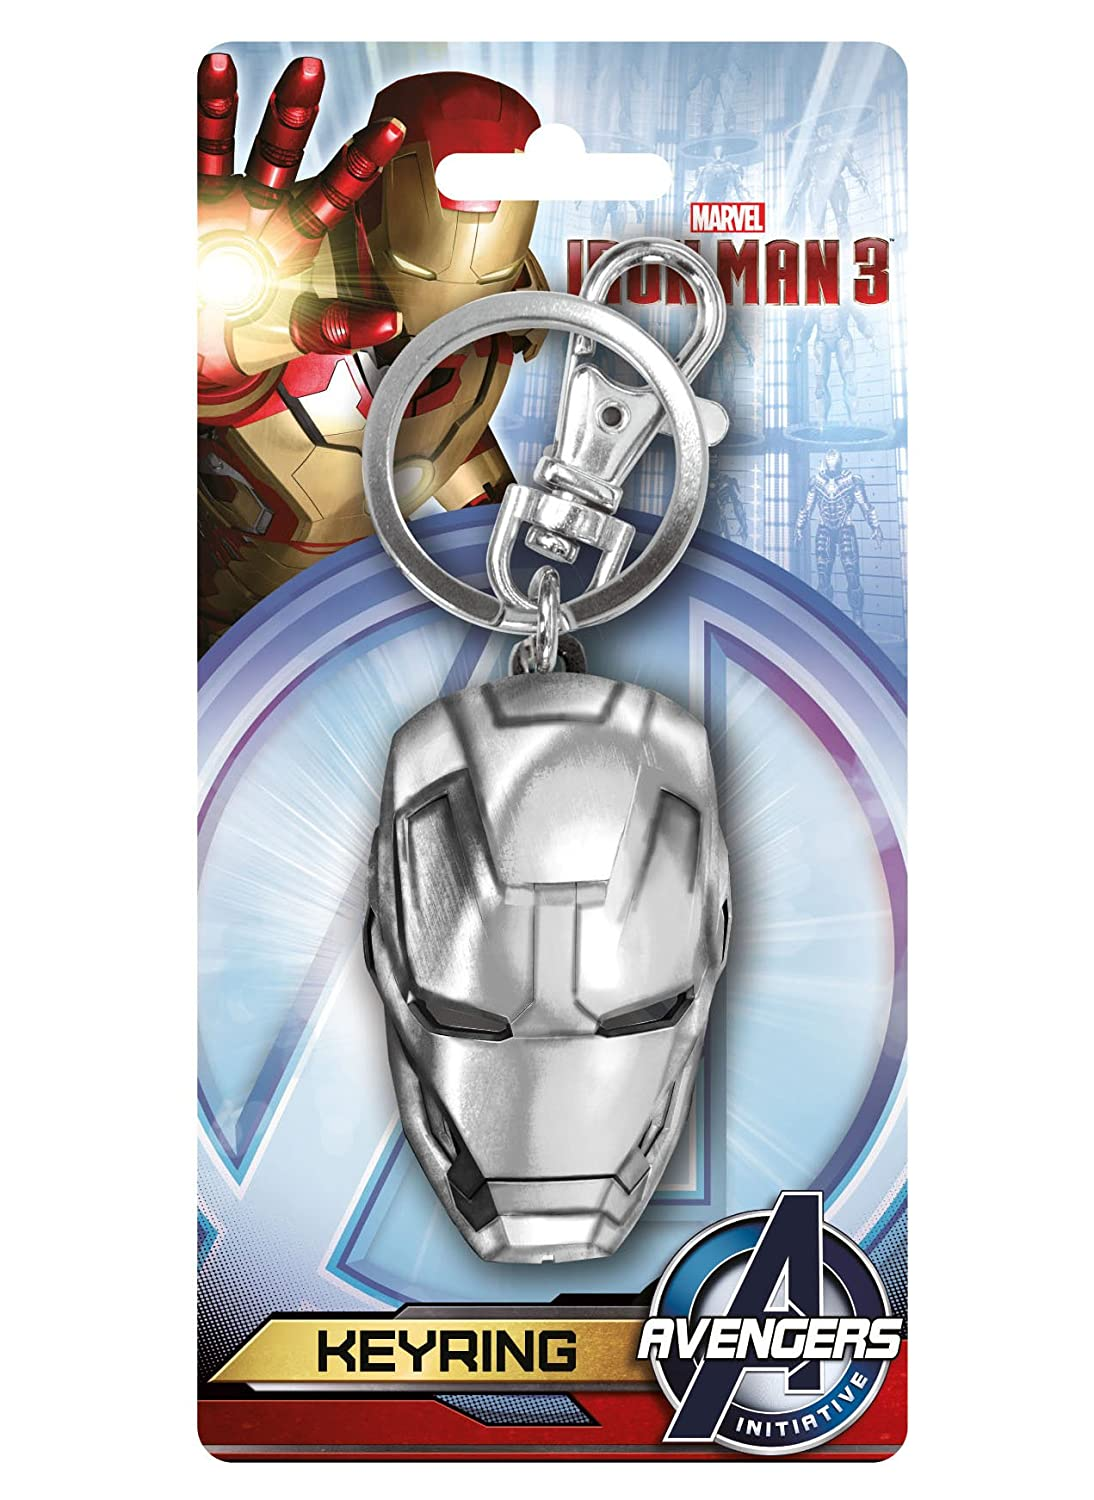 Iron Man de Marvel Avengers casco de estaño metal llavero